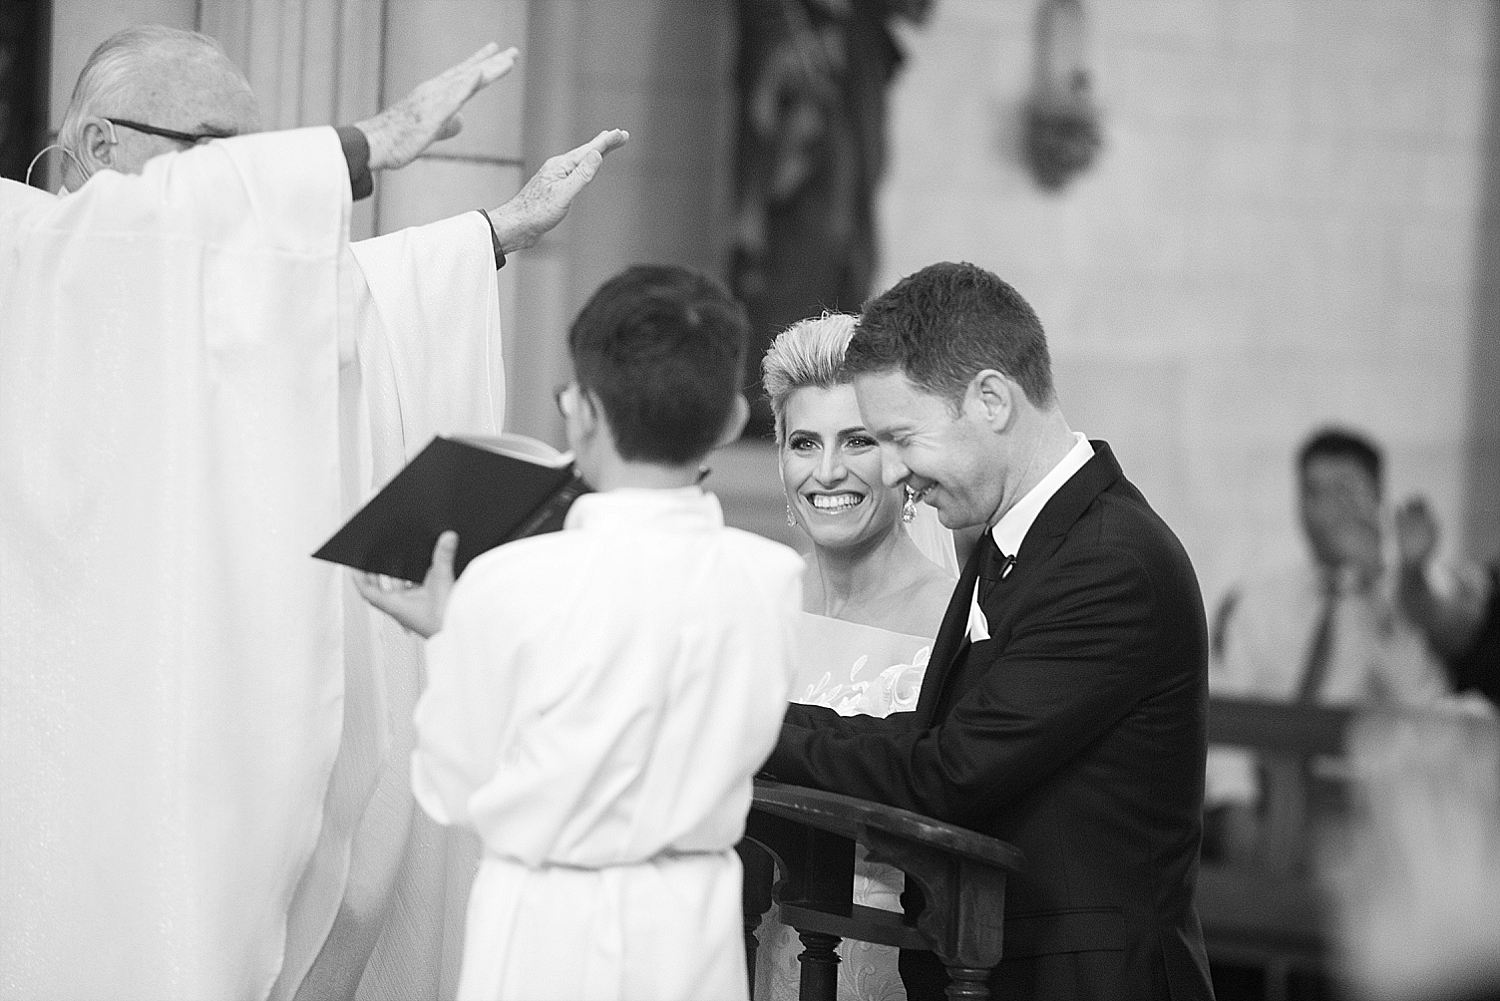 25st michaels archangel wedding perth32.jpg